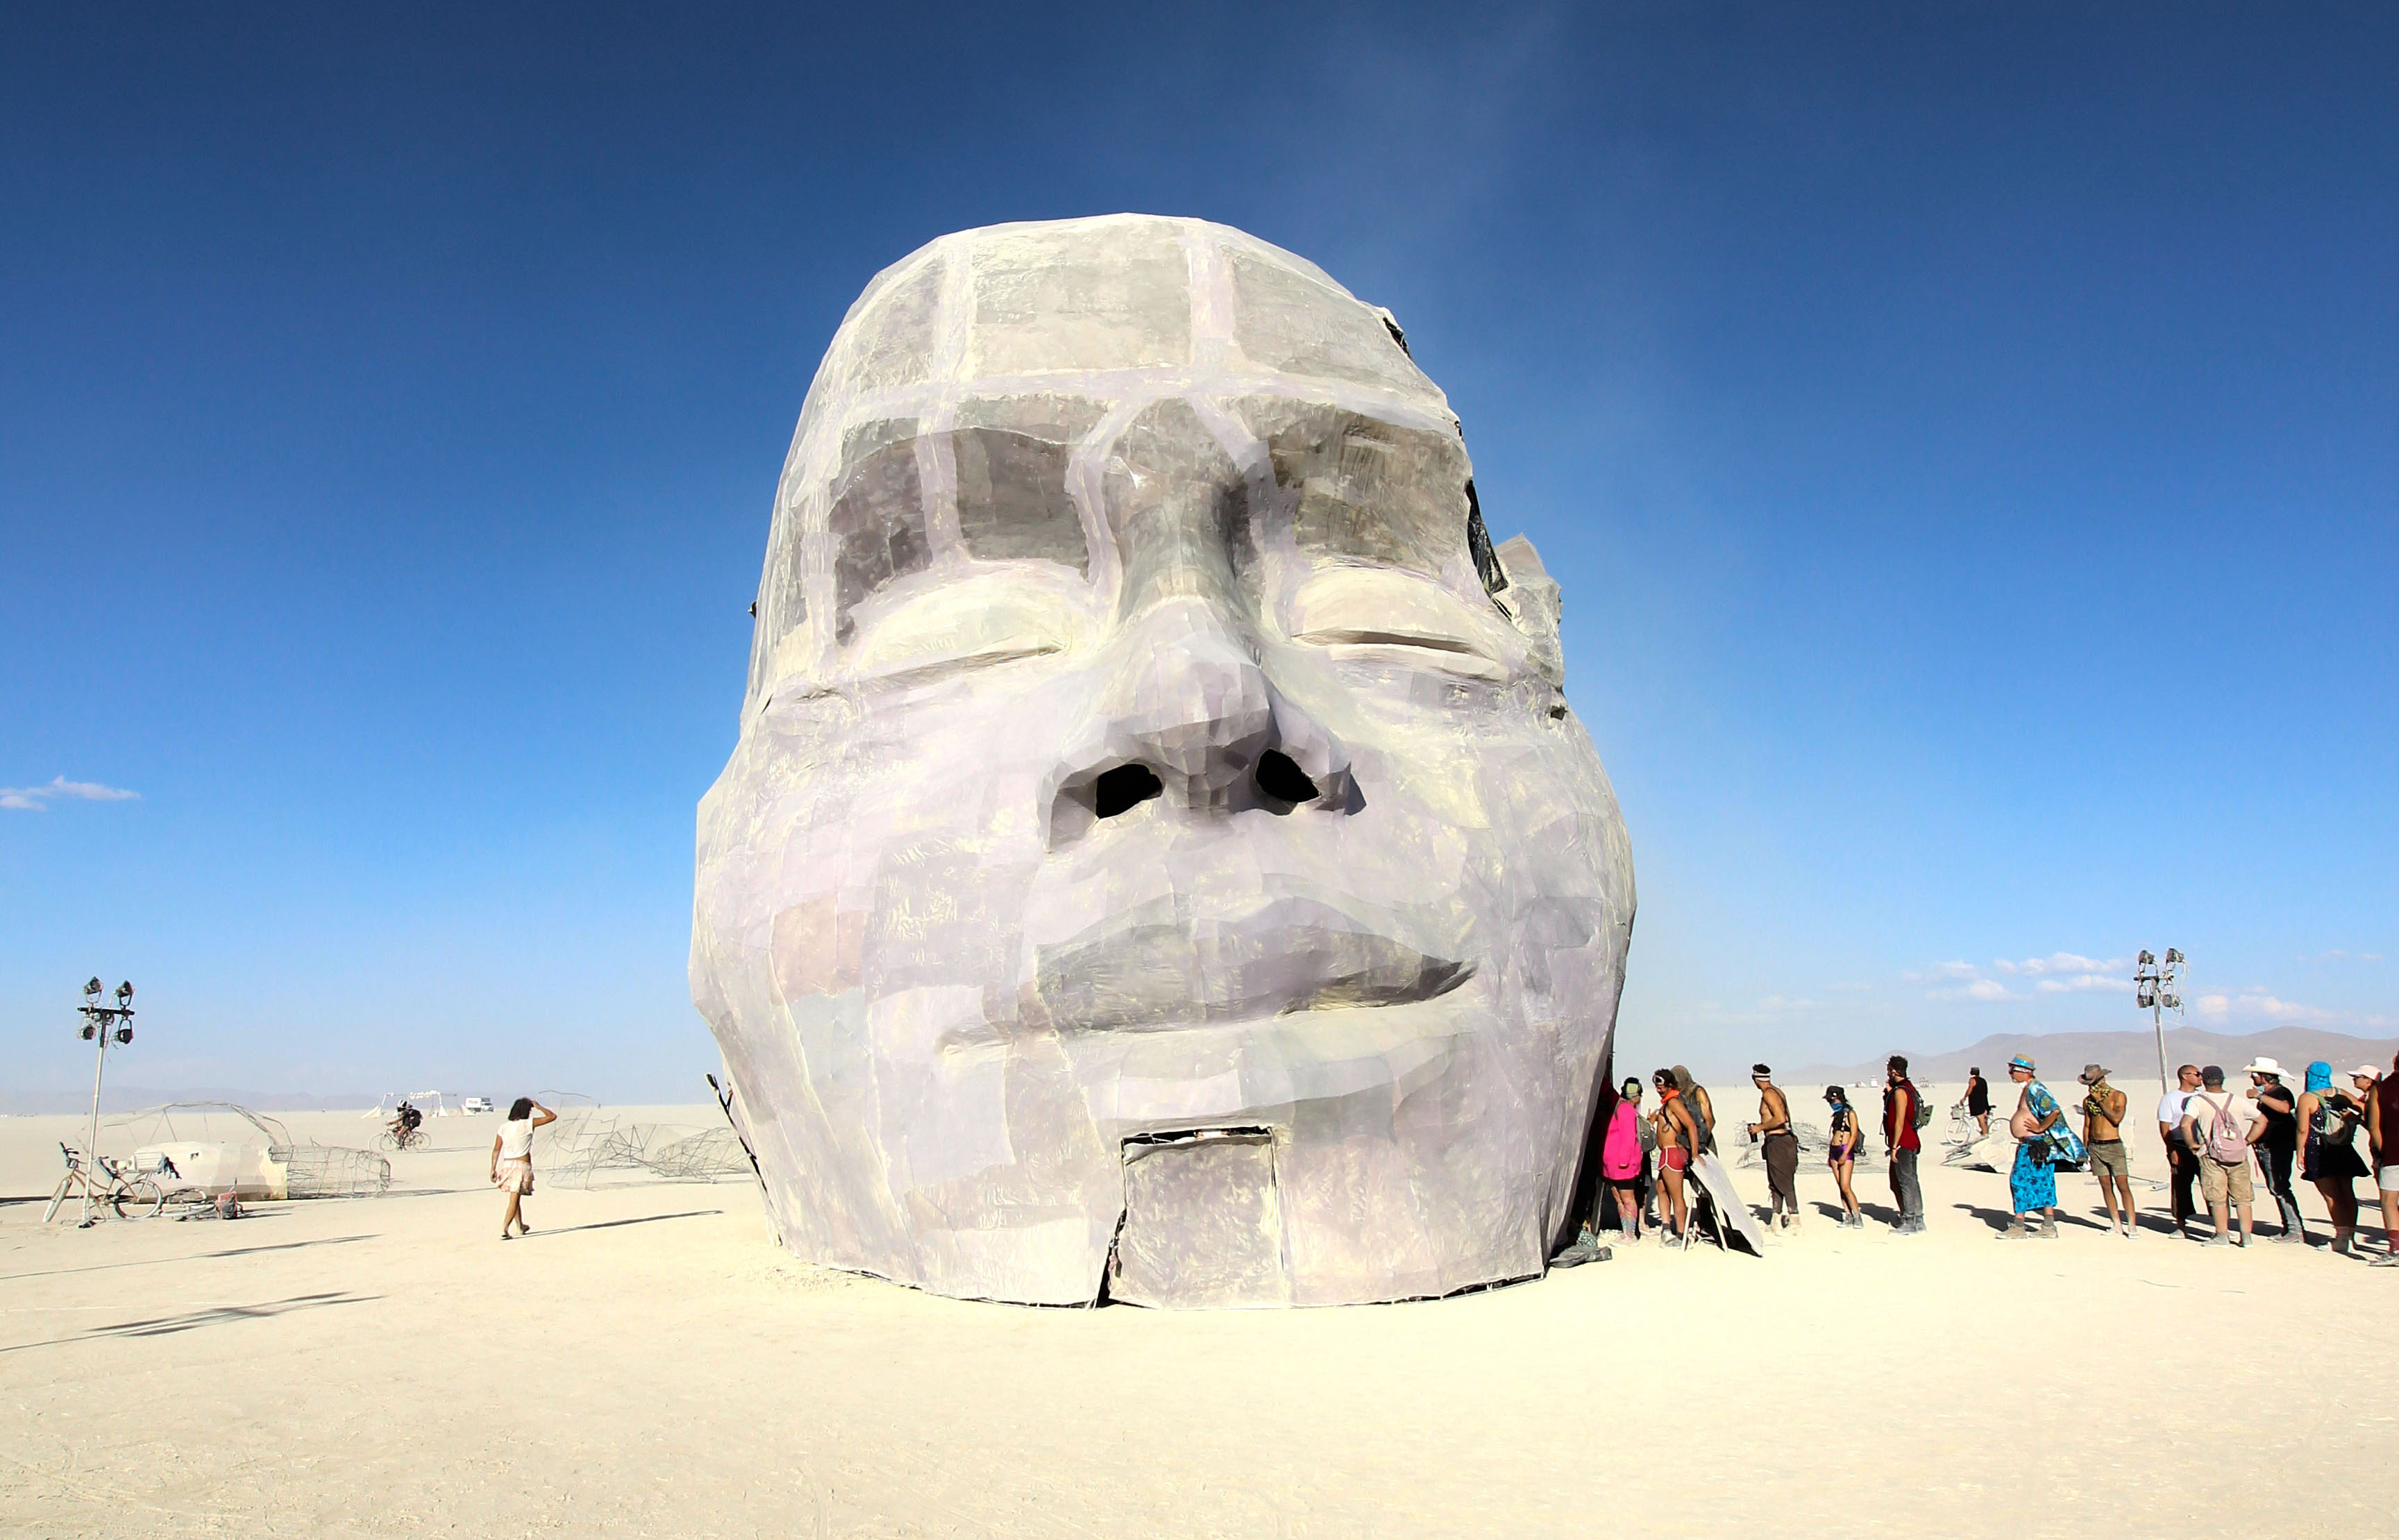 A column of people walk into the sculpture of a 20-foot-tall head that wears a peaceful expression.